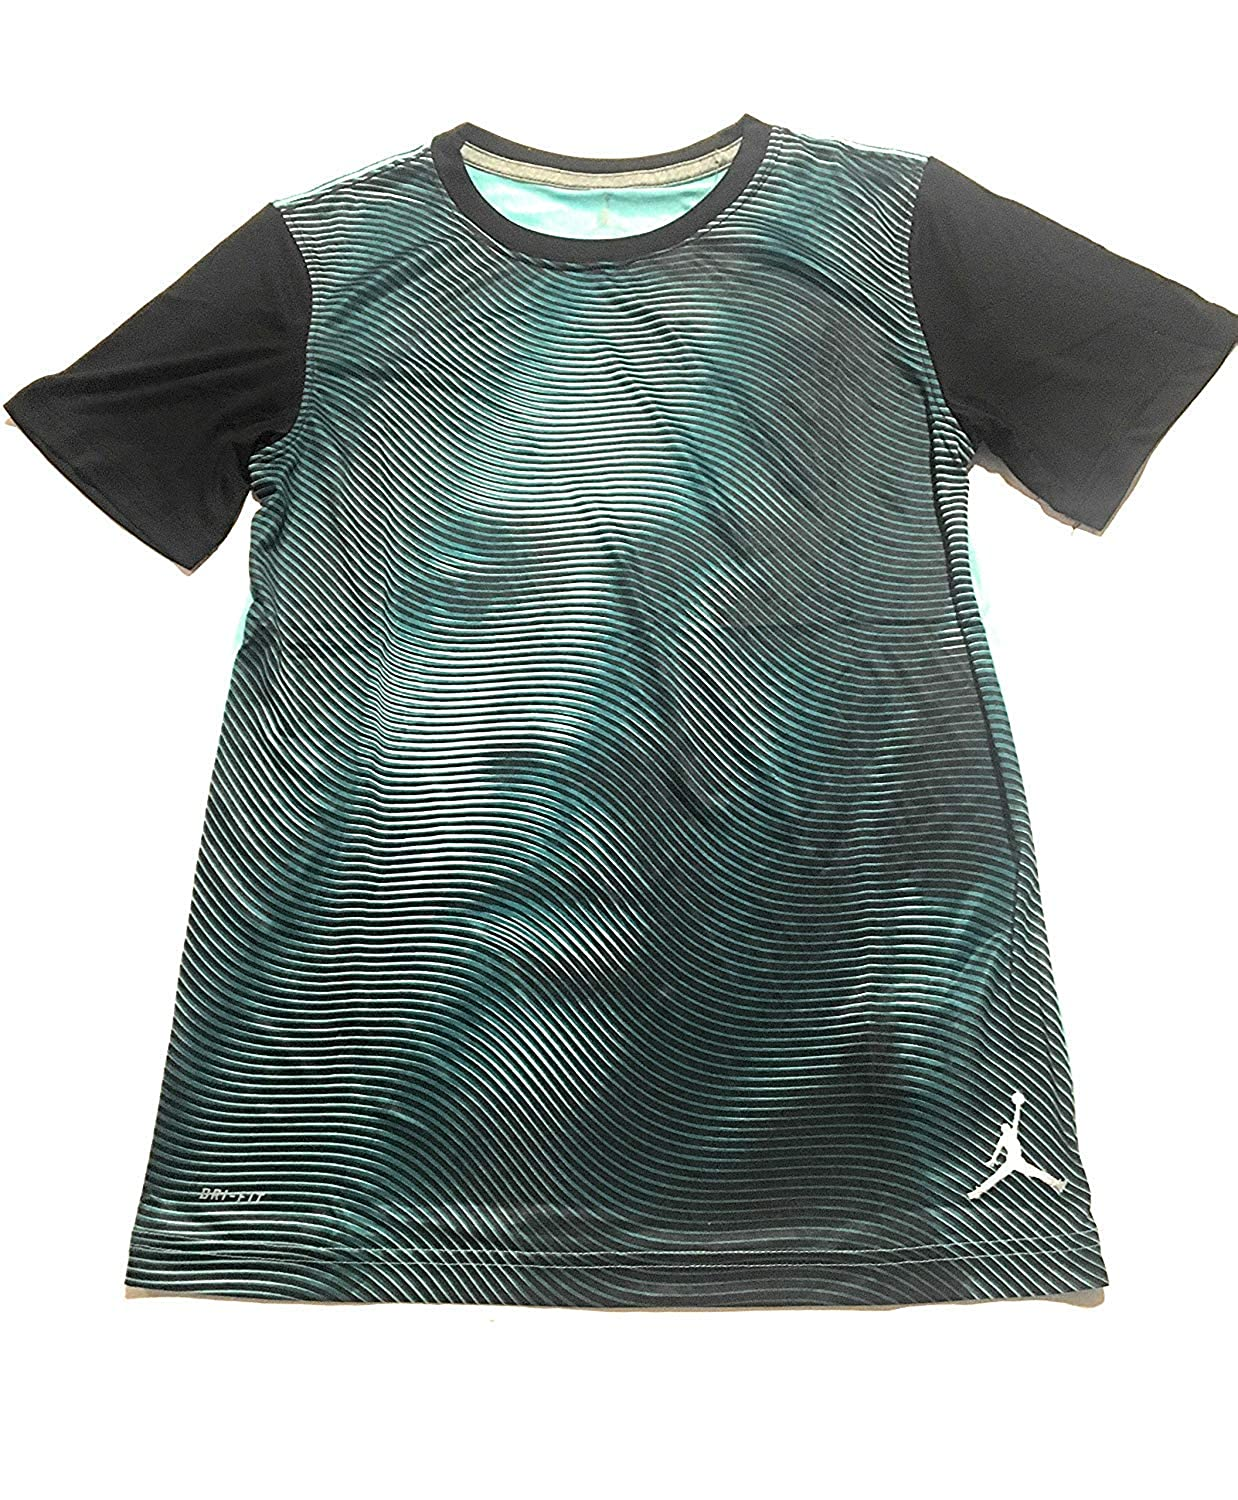 Jordan Jumpman Big Boys Dri-Fit T-Shirt Hyper Turquoise XL 13-15 Years